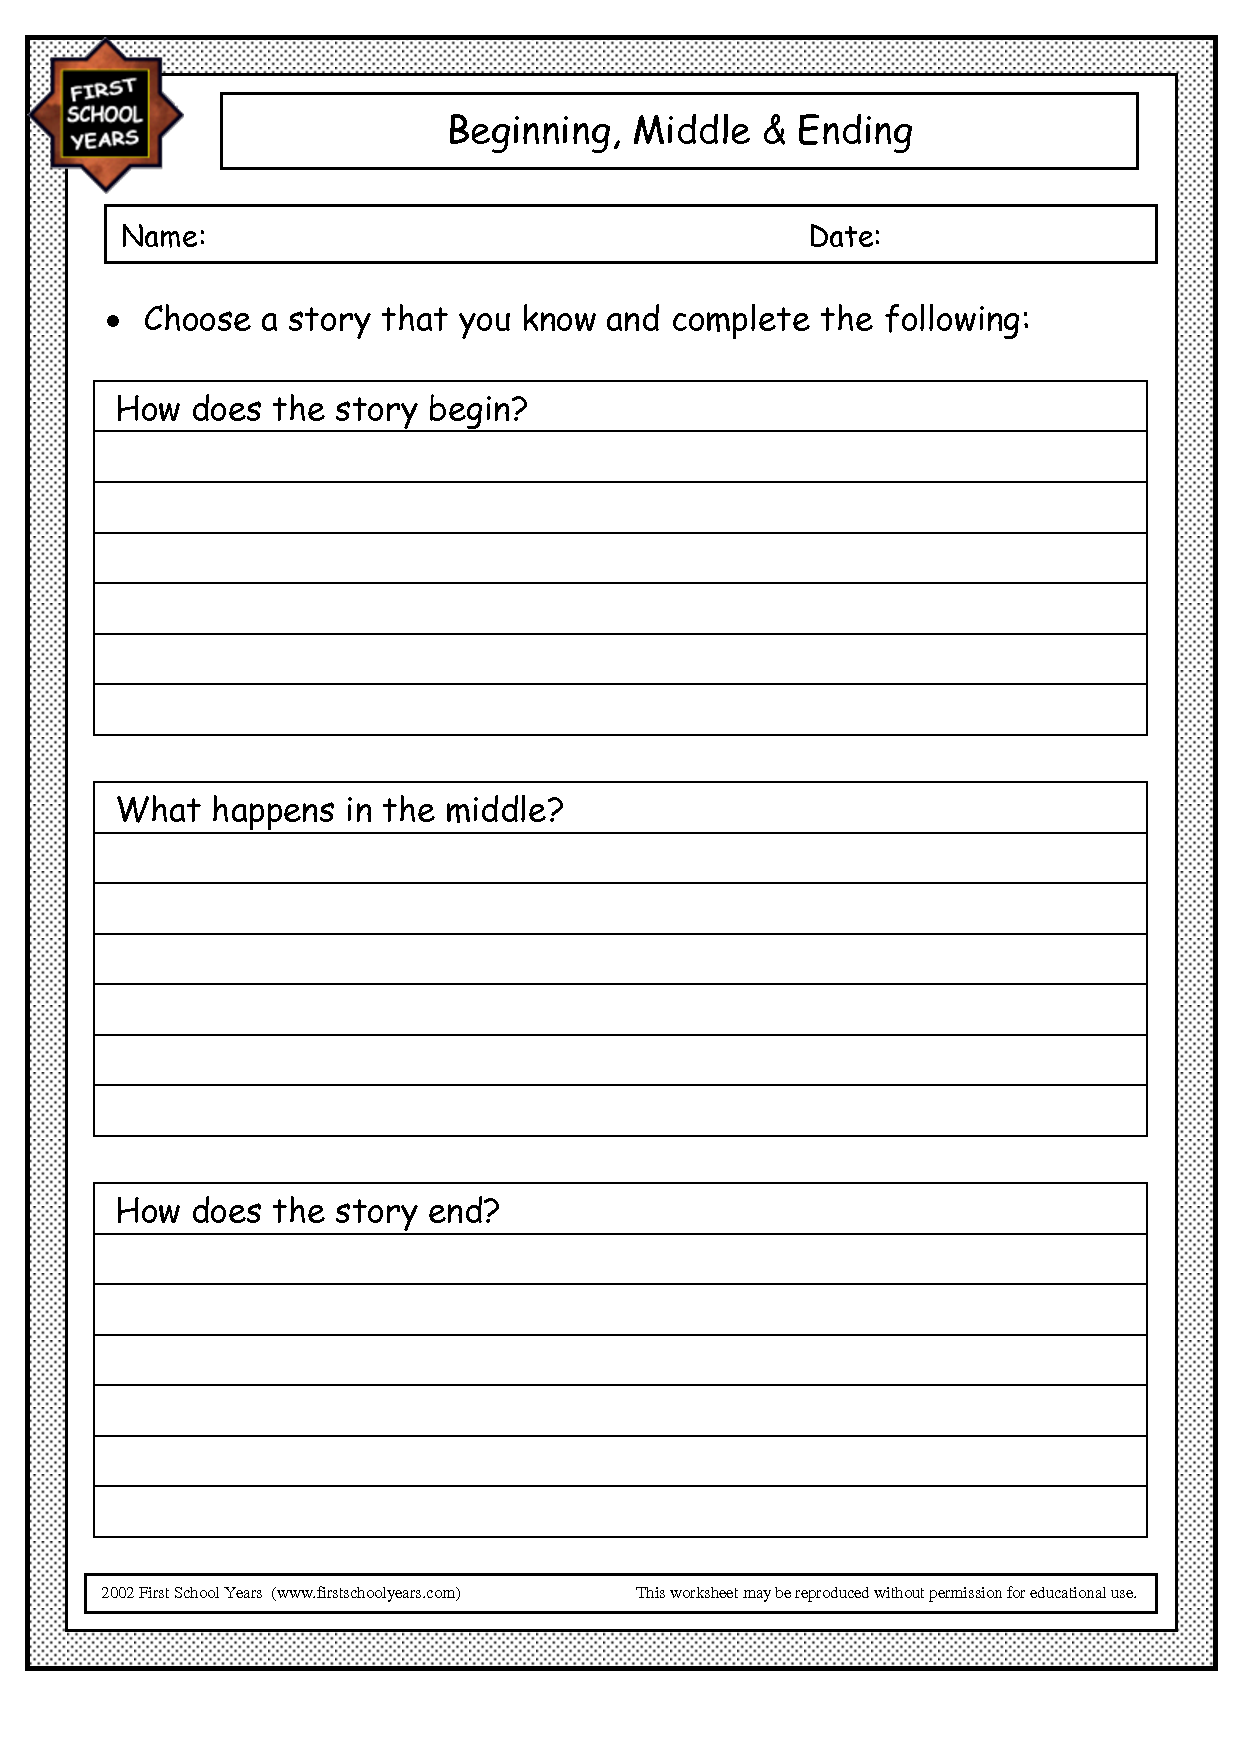 Uncategorized Beginning Middle And End Worksheets beginning middle end worksheet kindergarten images rachael images